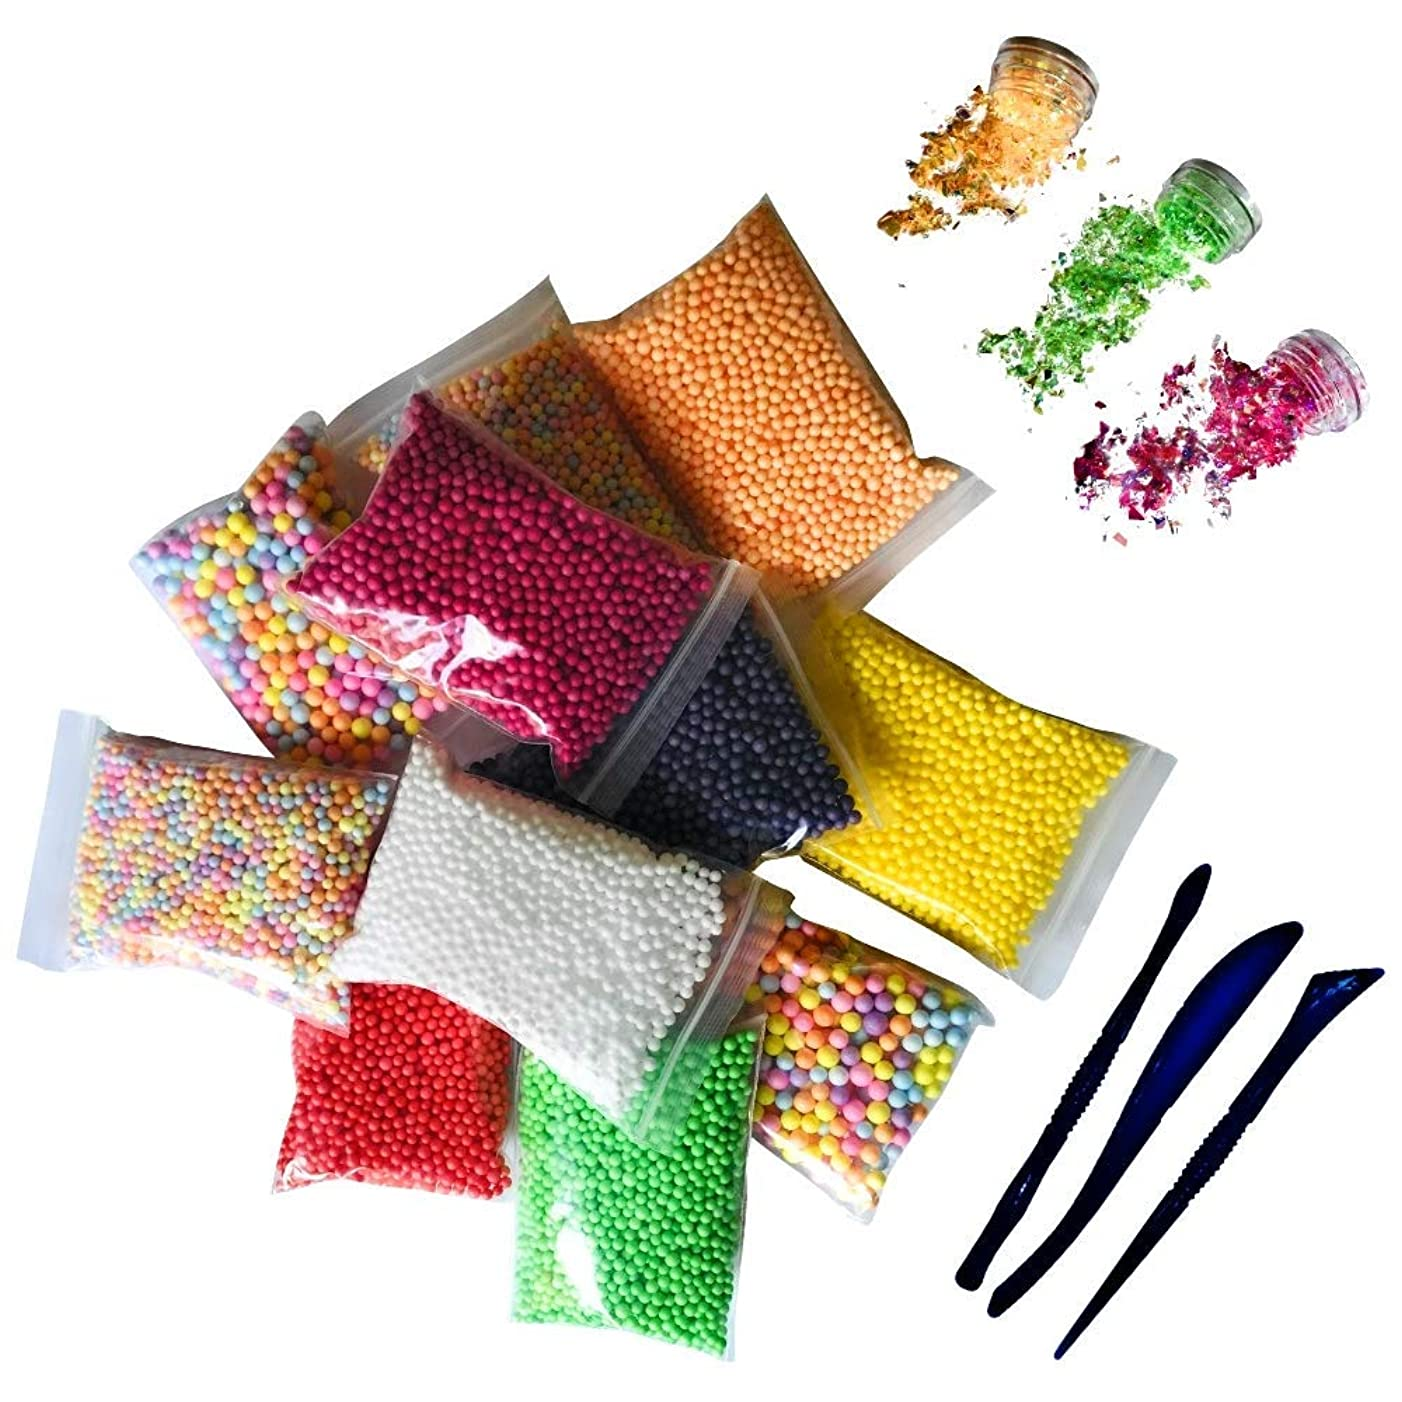 Holiday Foam Beads for Slime 15 Pack Supplies Kit - Include Colorful Dark Colors Foam Balls & Sugar Papers + Slime Tools Set | Perfect for Your Kids DIY Homemade Slime Art Craft Decorations